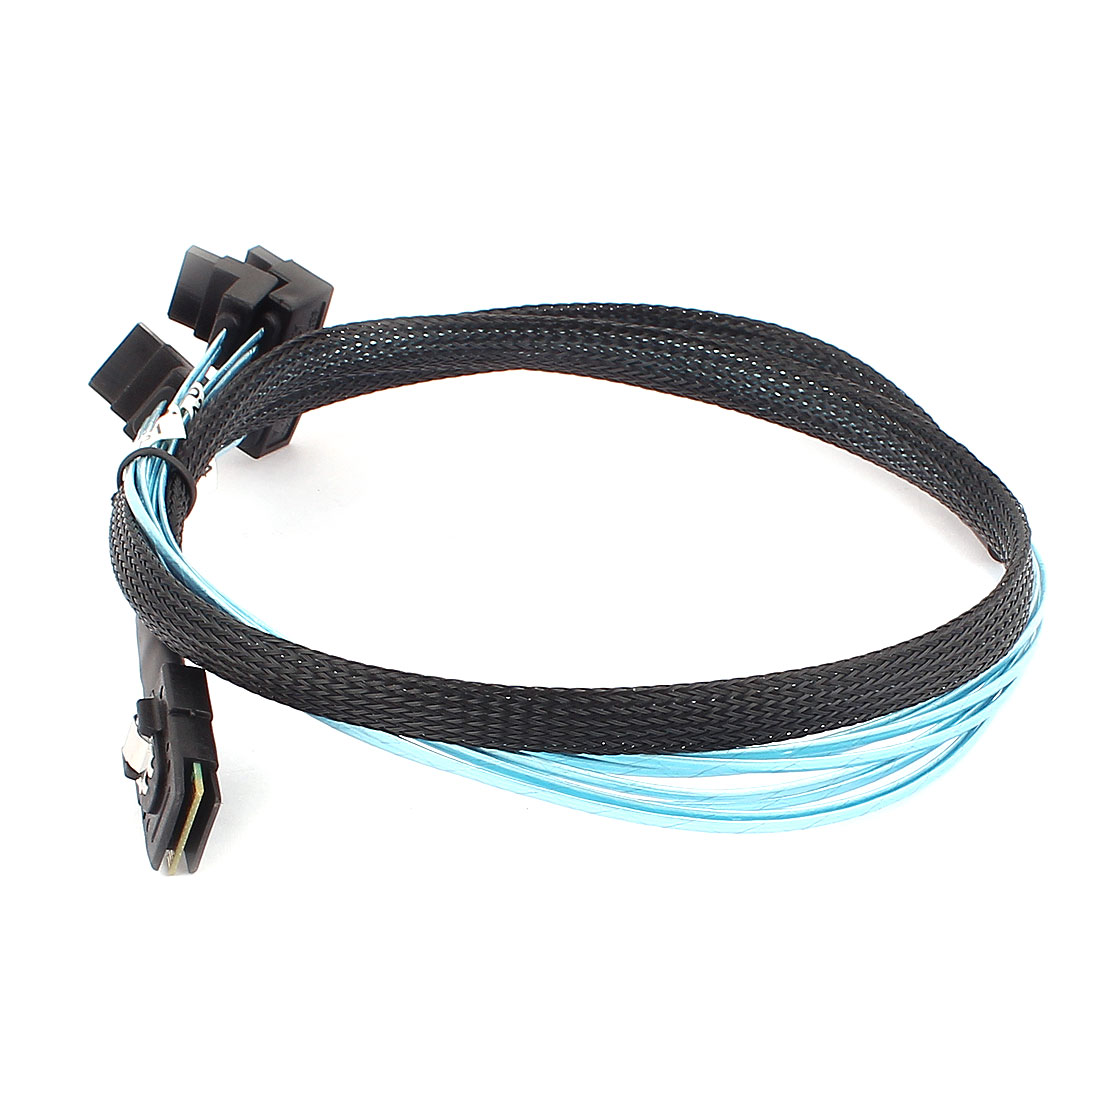 Mini SAS SFF-8087 36-Pin Male to 4 SATA 7-Pin Splitter Adapter Cable 1M